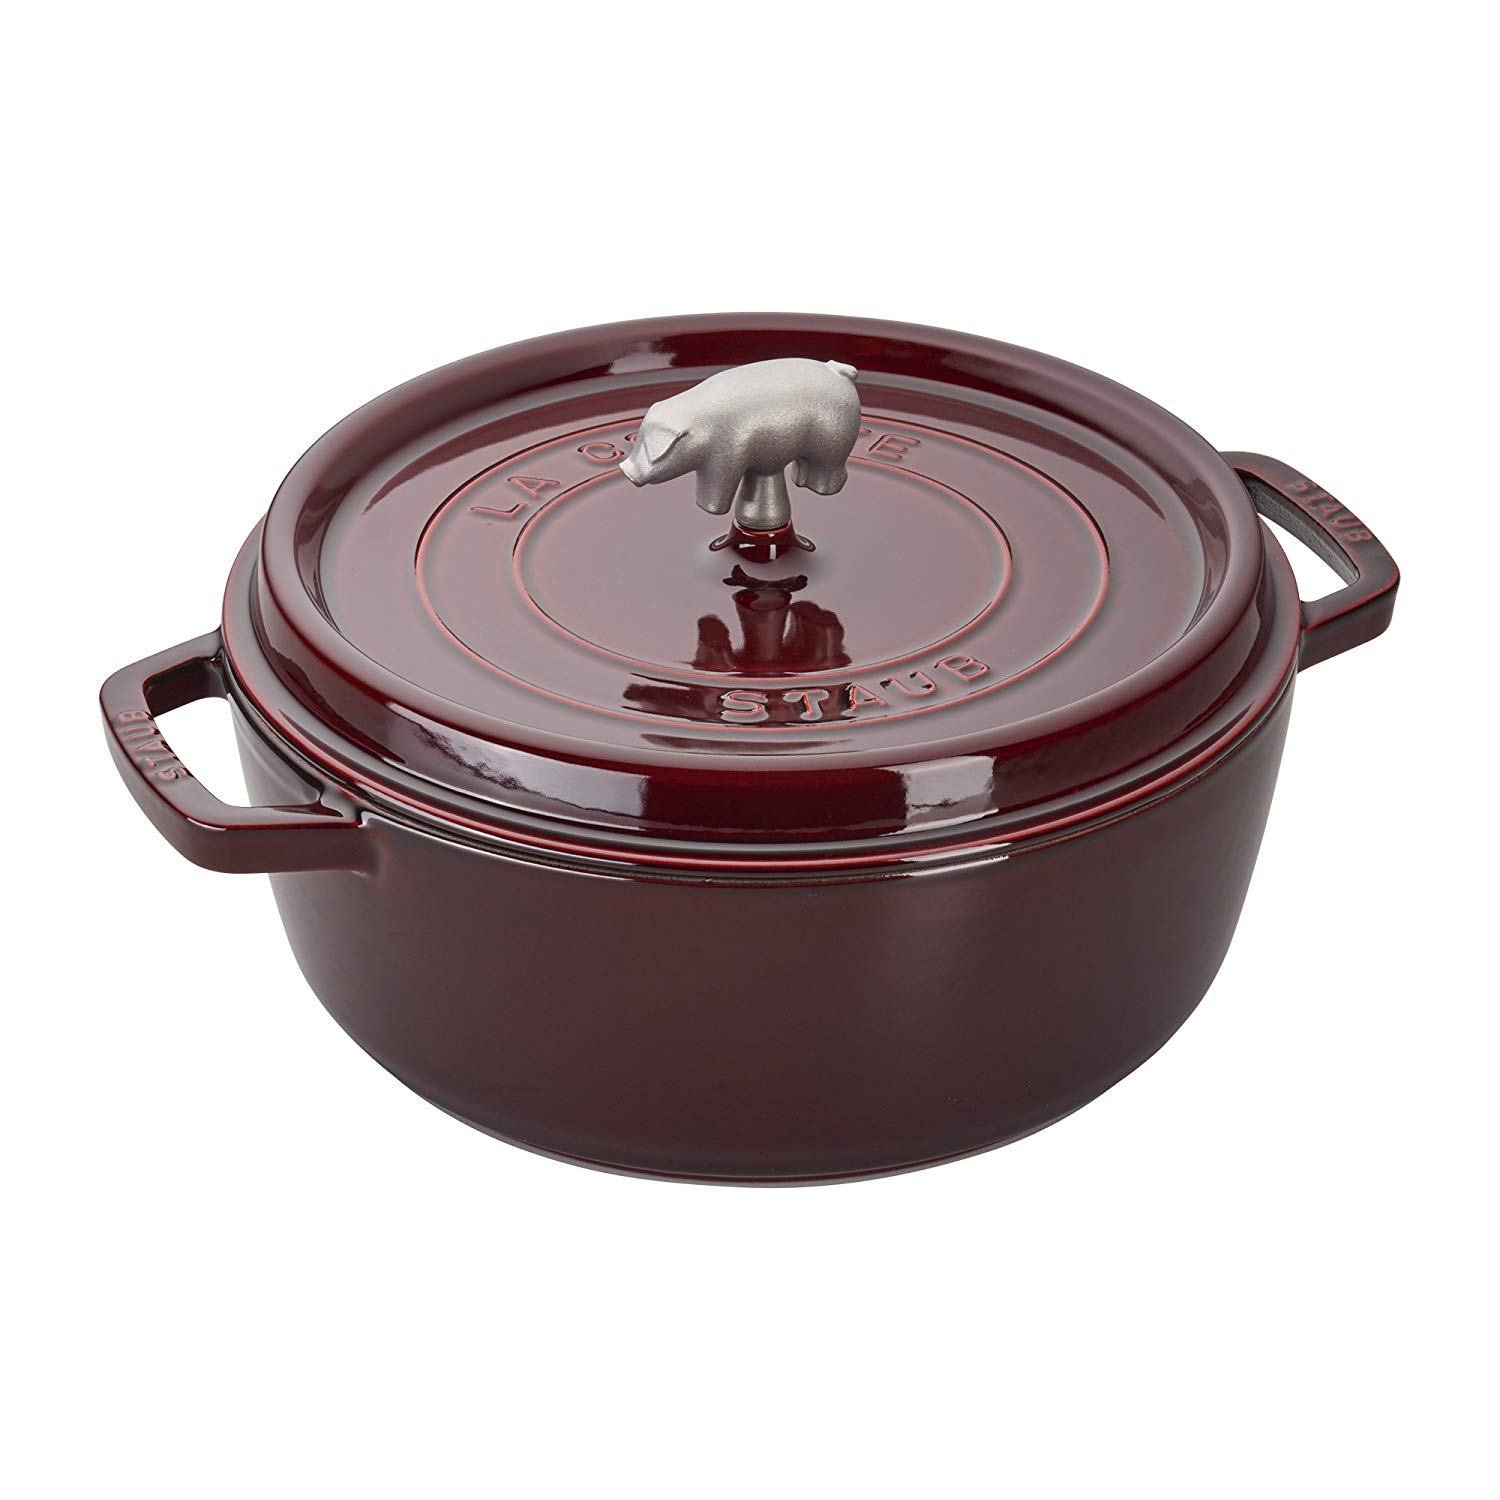 staub cocotte - best cookware